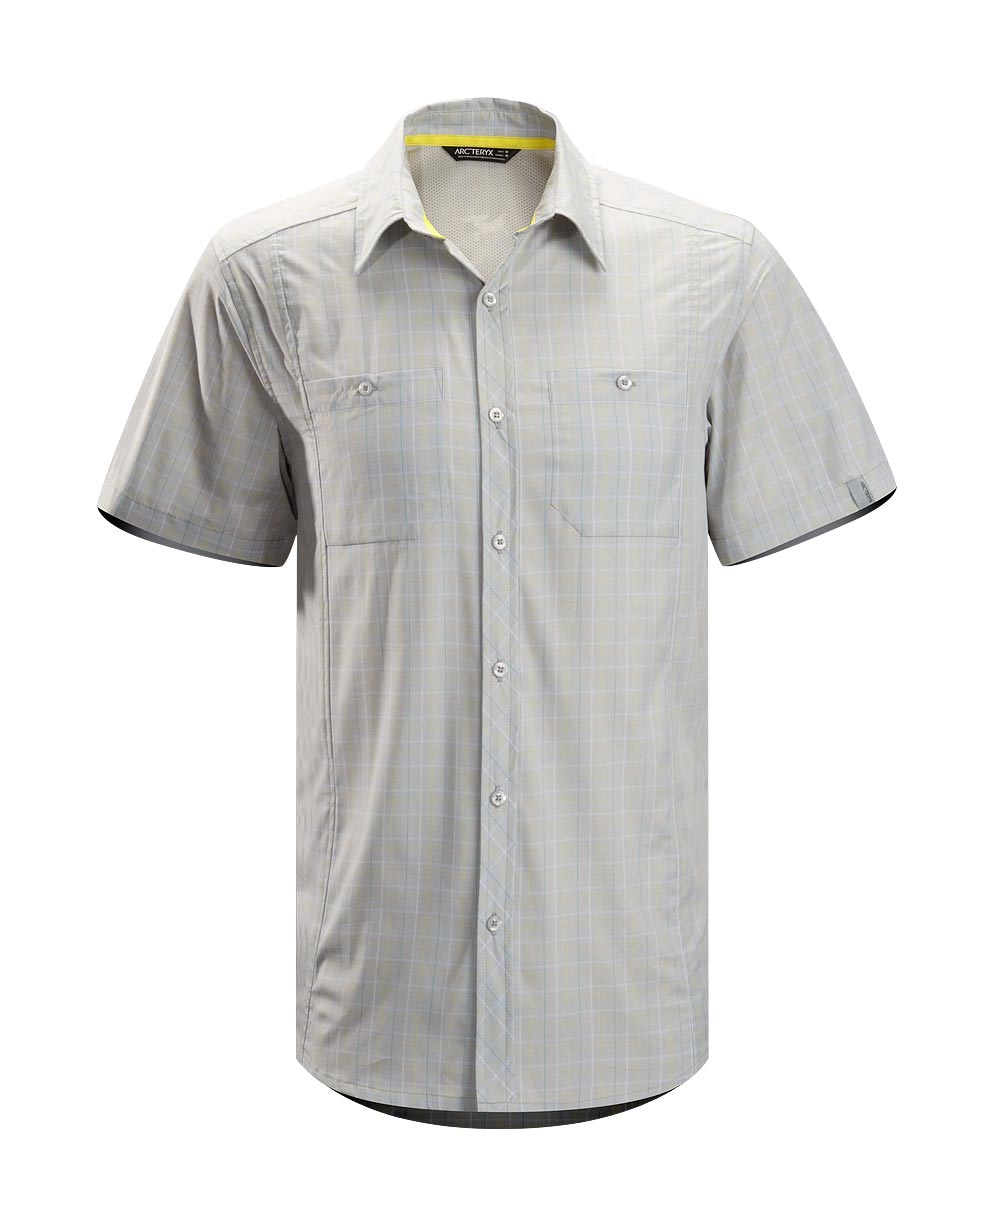 Arcteryx Silverstone Borderline Shirt SS - New